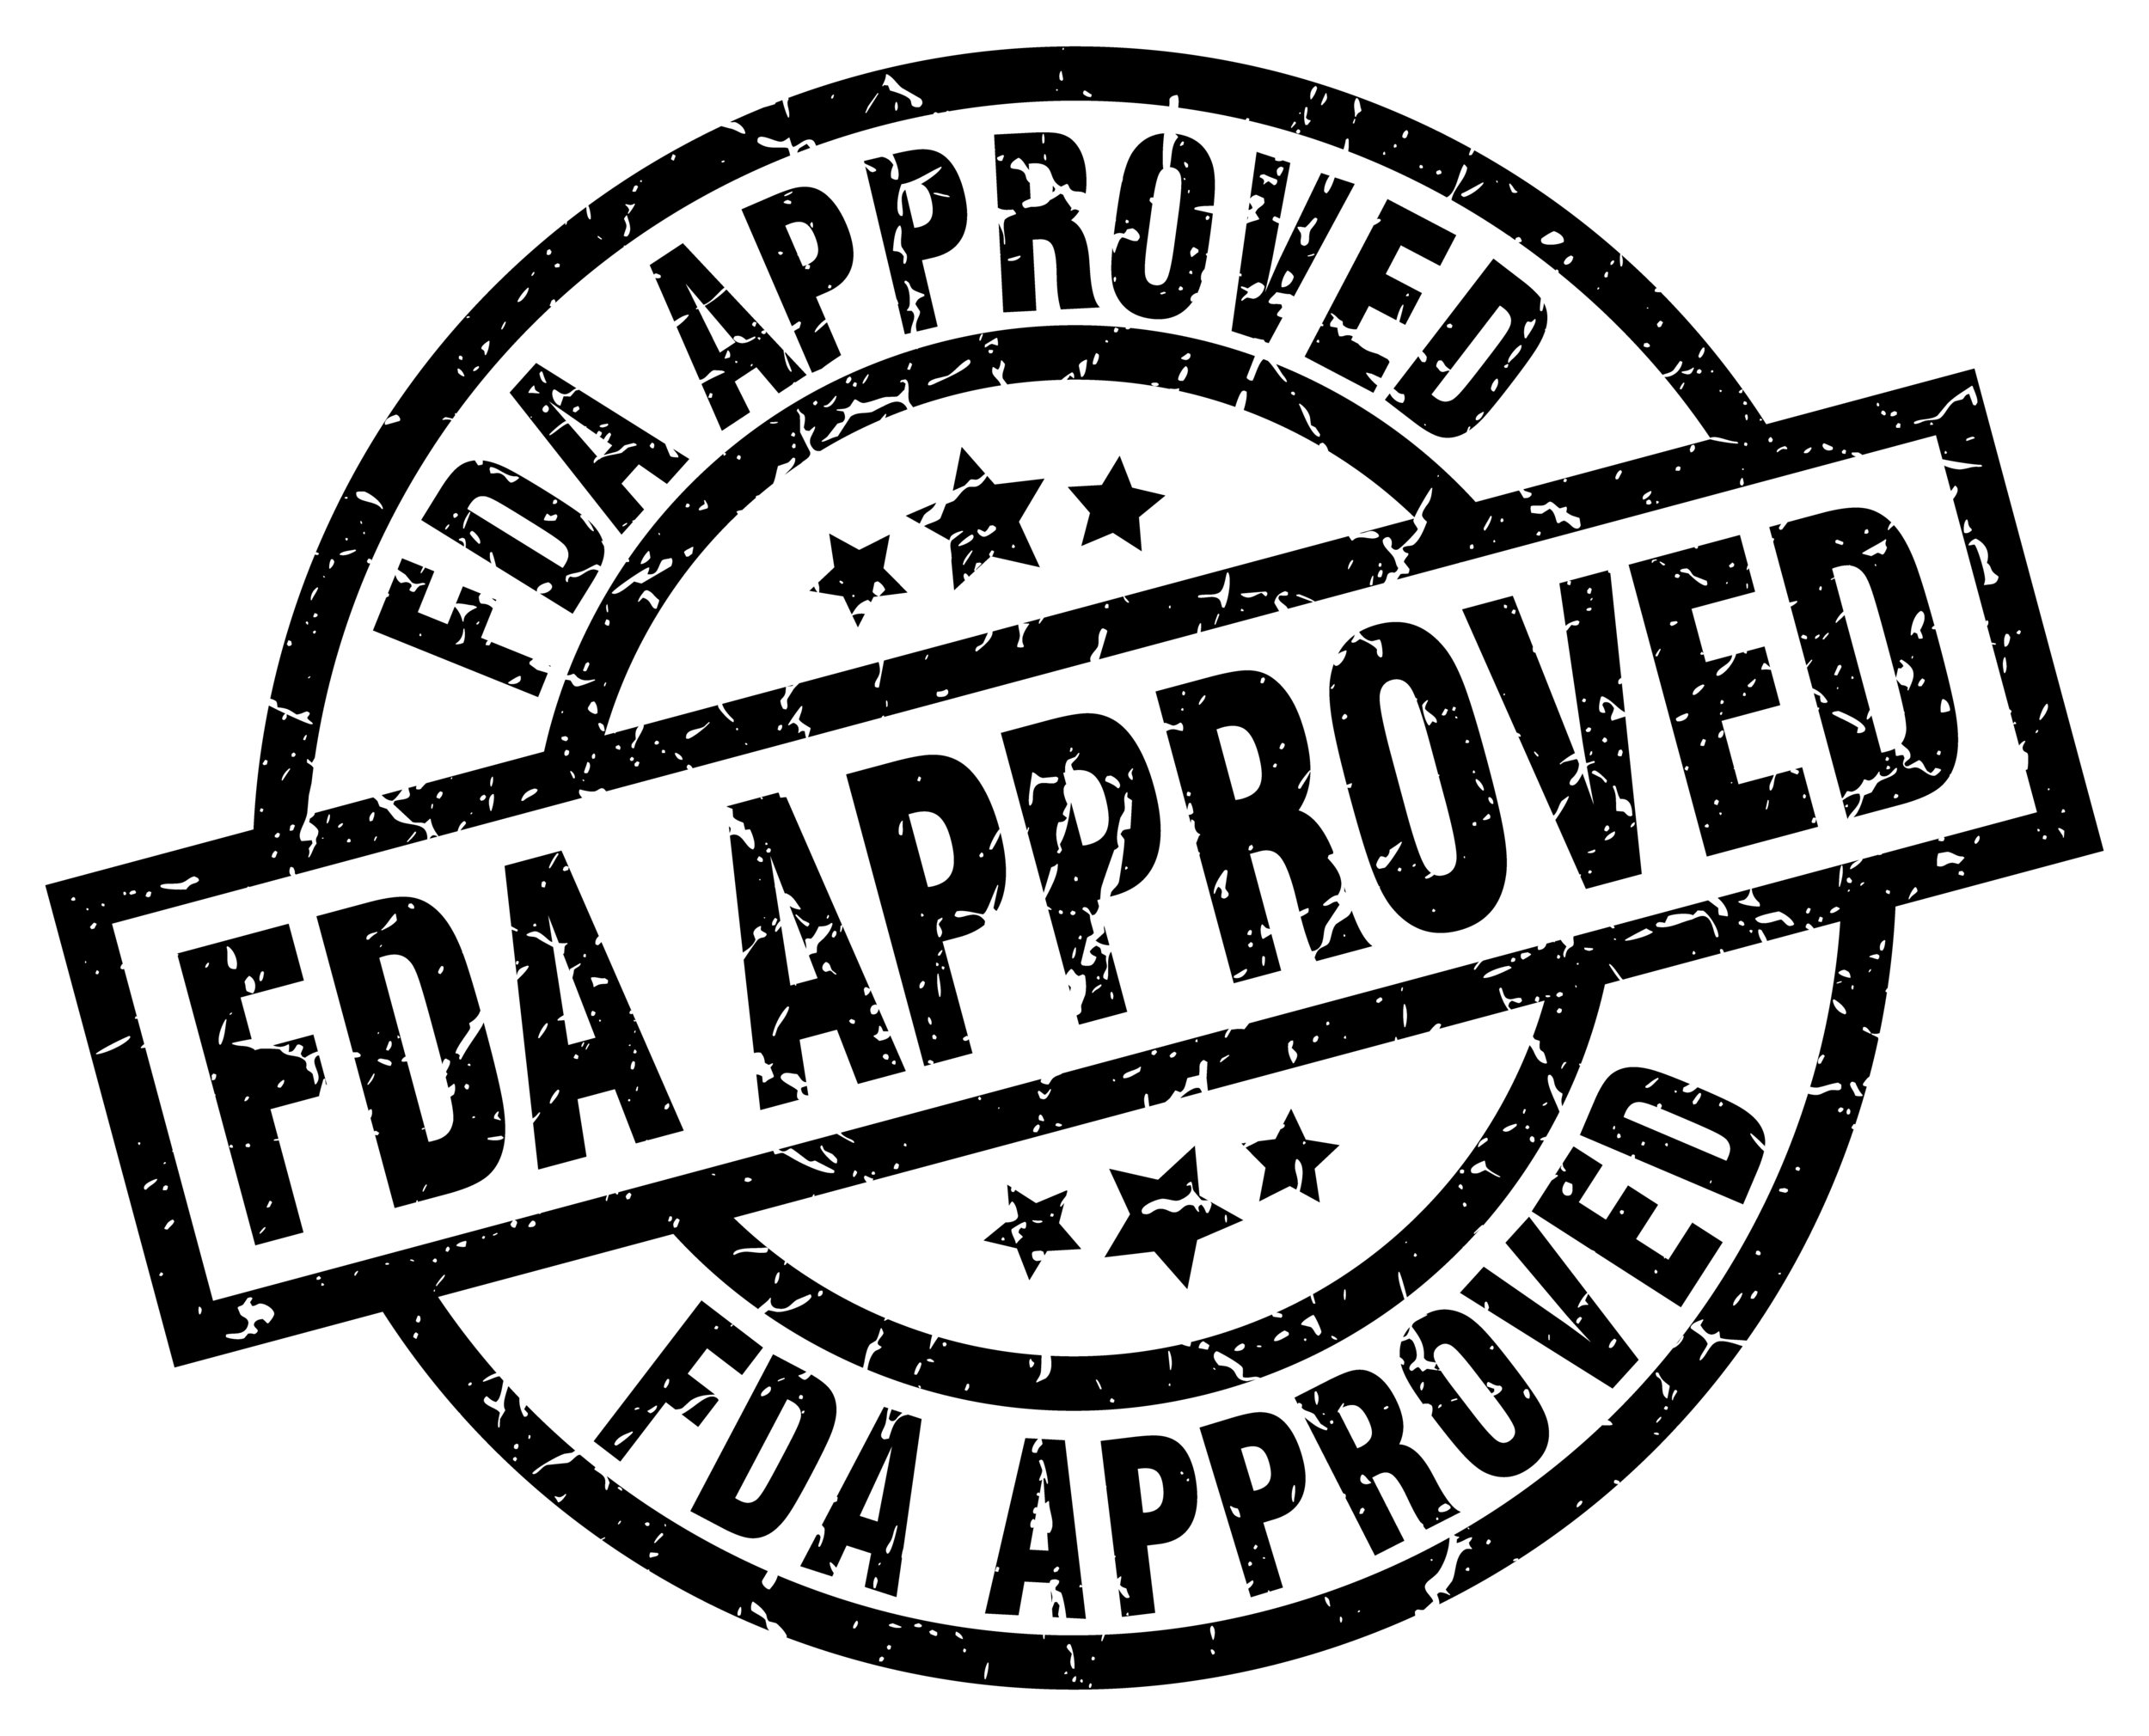 fda approved.jpg